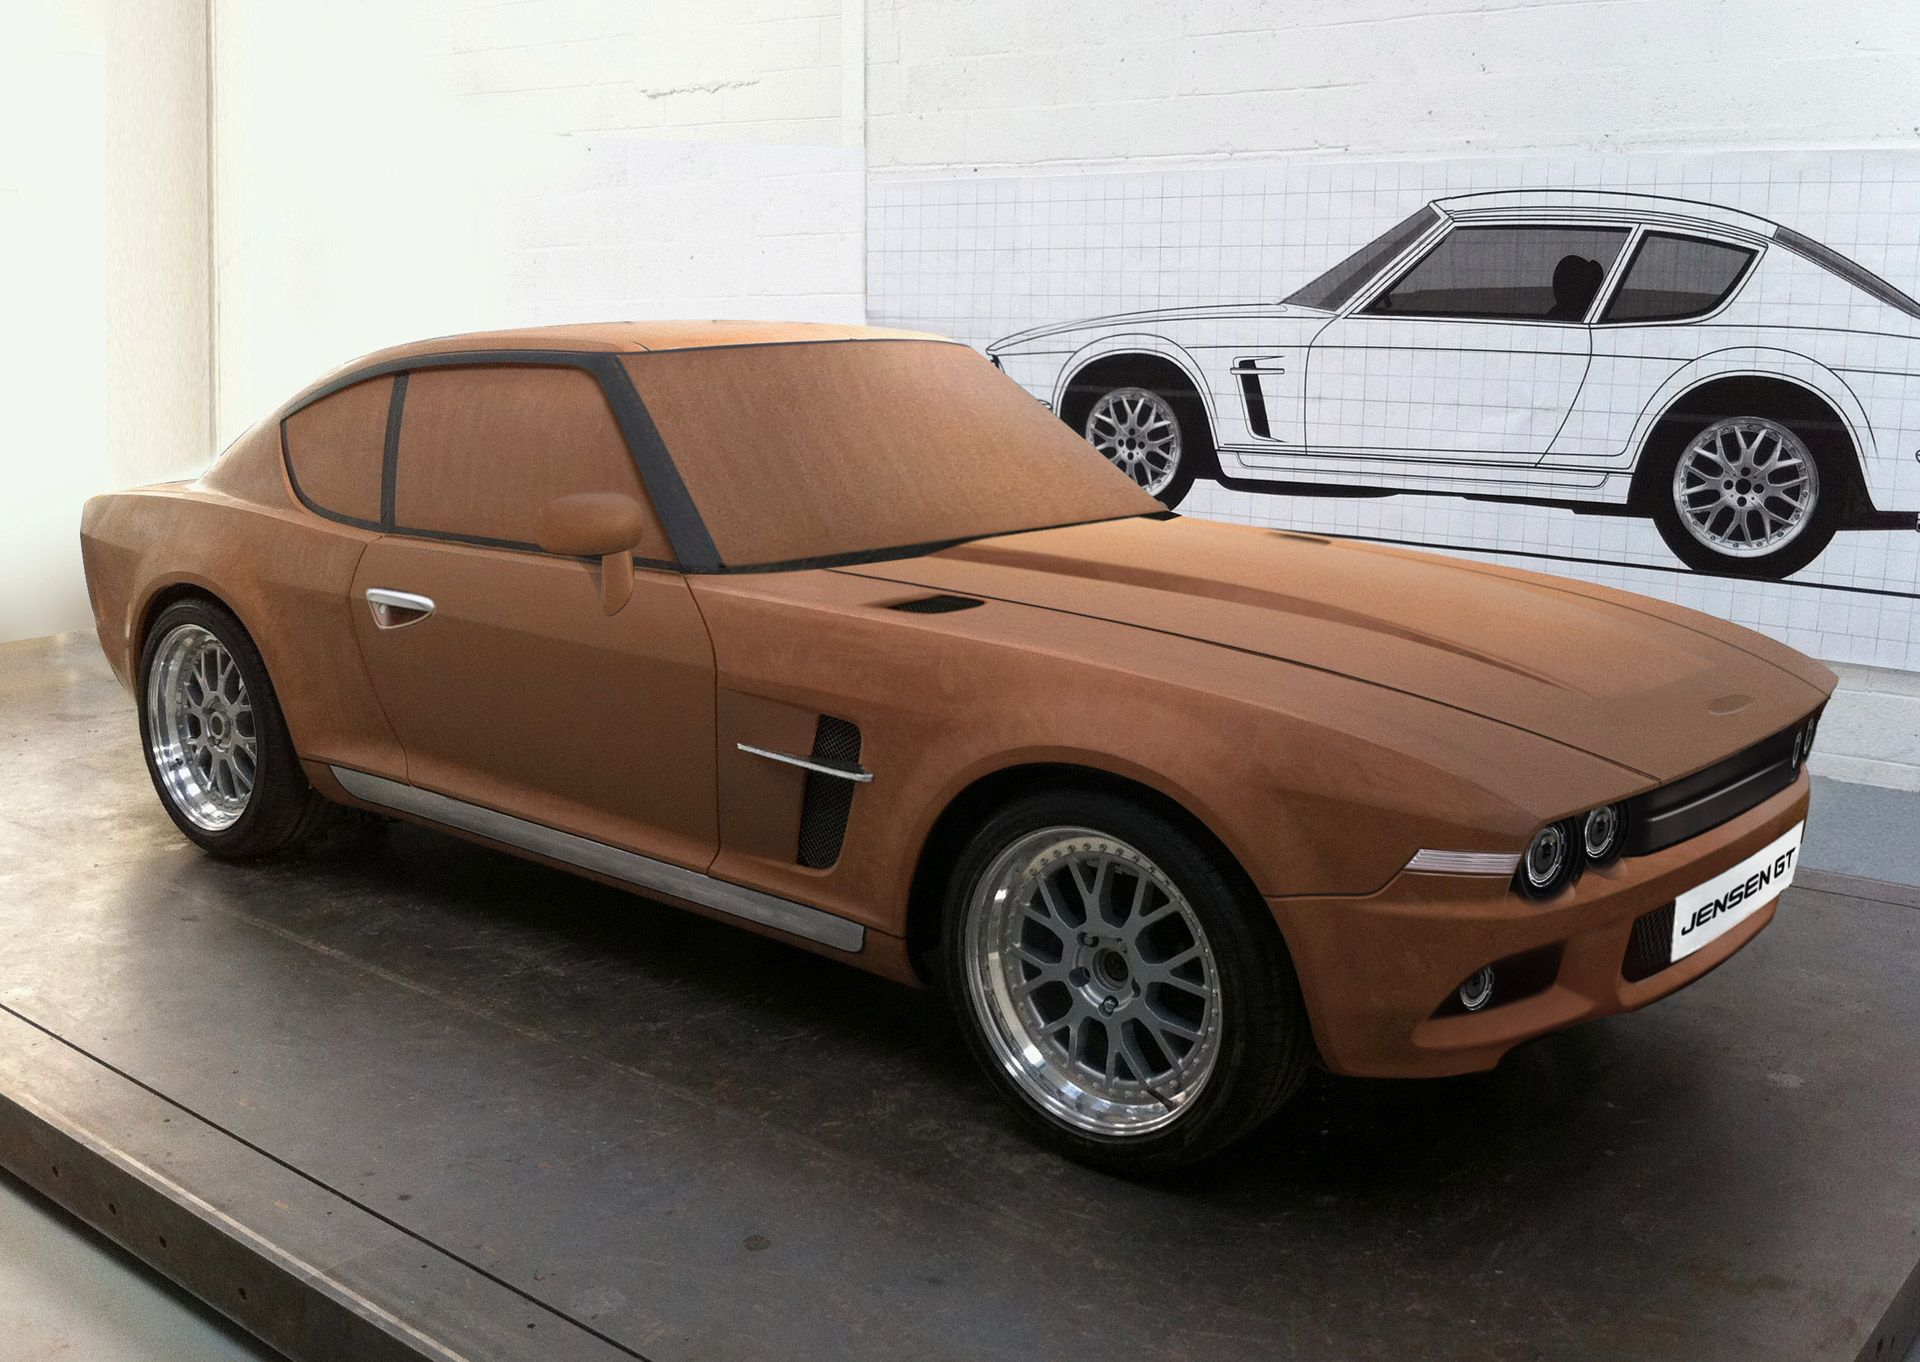 British sports car brand Jensen was recently revived, for the second time (the first attempt was in the early 2000s), and is planning to launch a successor for the famous Interceptor grand tourer last produced in 1976 when the original Jensen went under. However, before you write this off as yet...